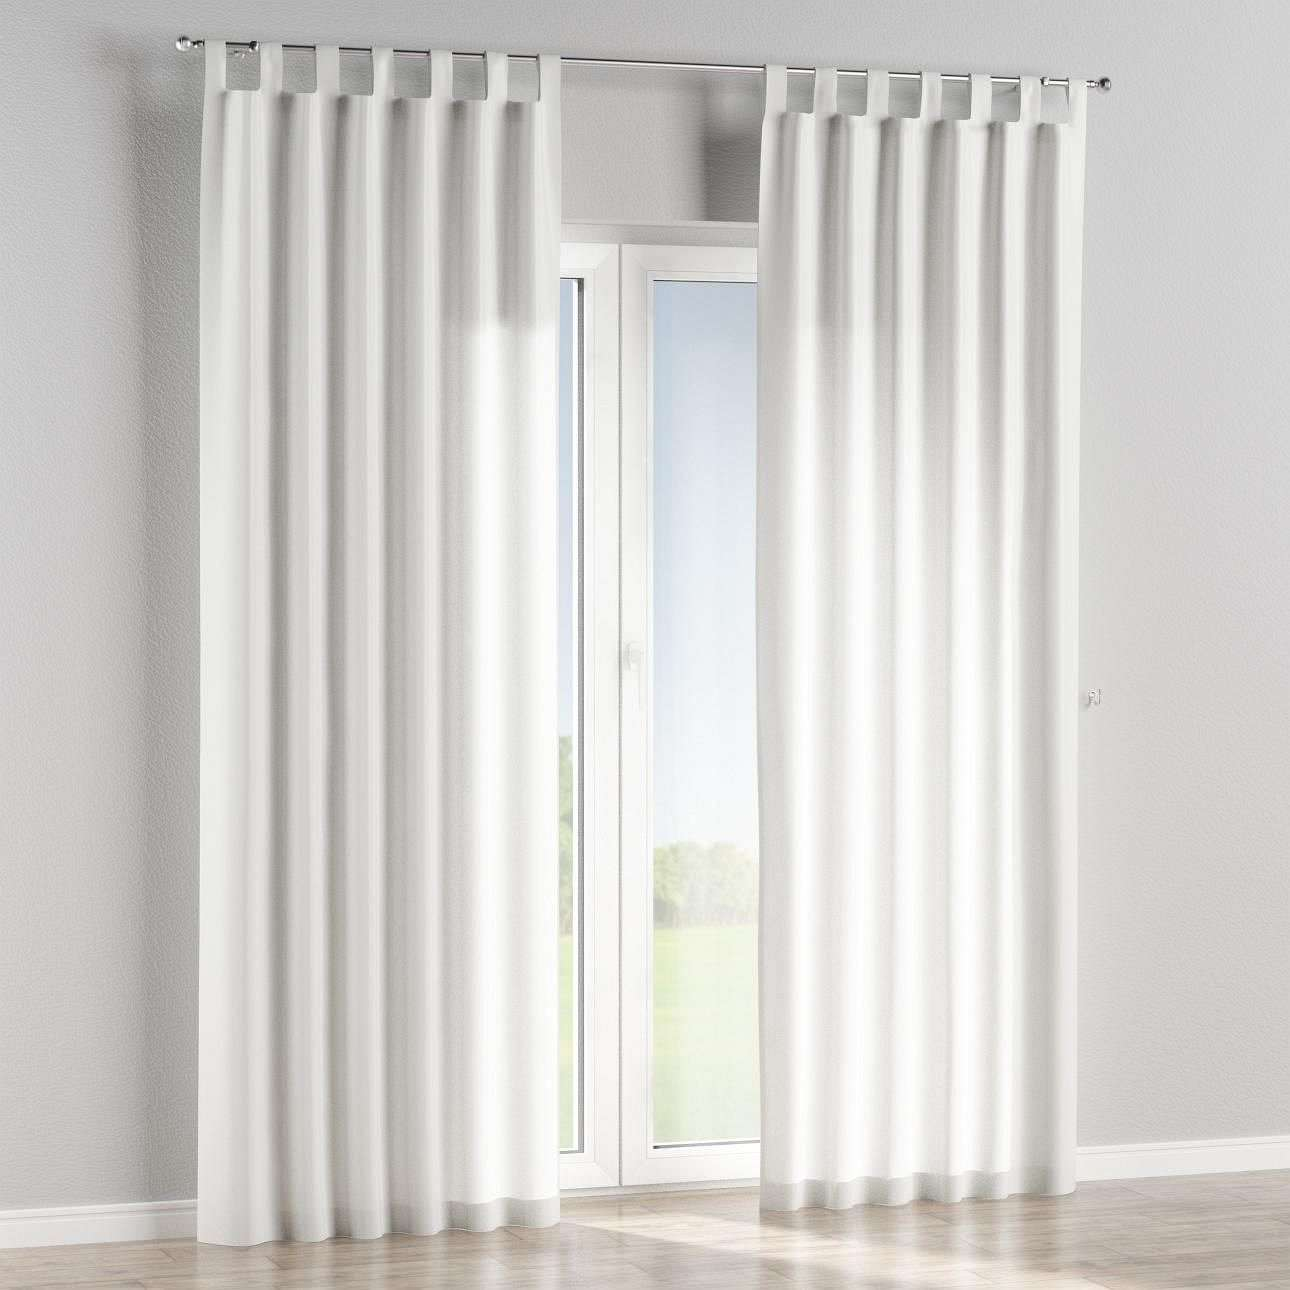 Tab top curtains in collection Christmas , fabric: 630-16